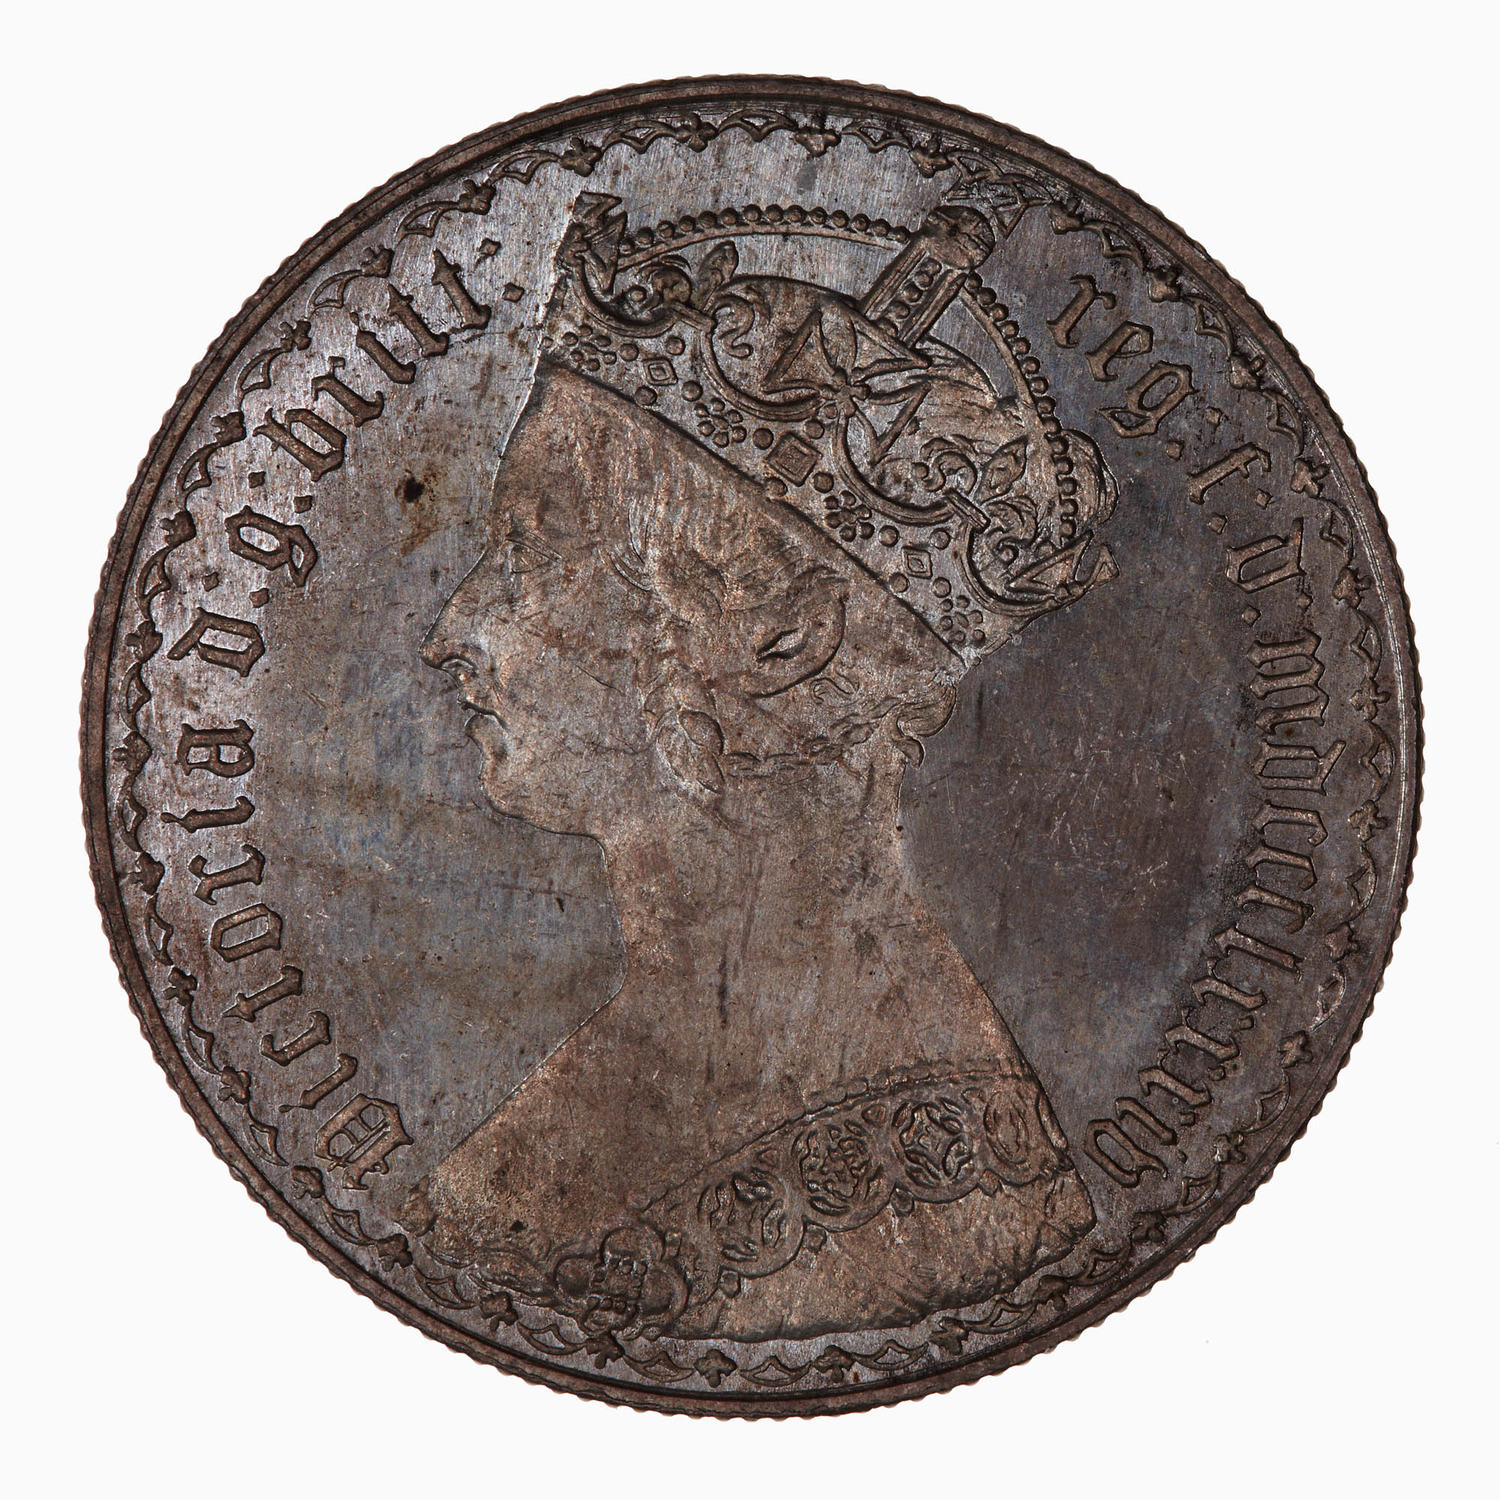 Florin 1884: Photo Coin - Florin, Queen Victoria, Great Britain, 1884